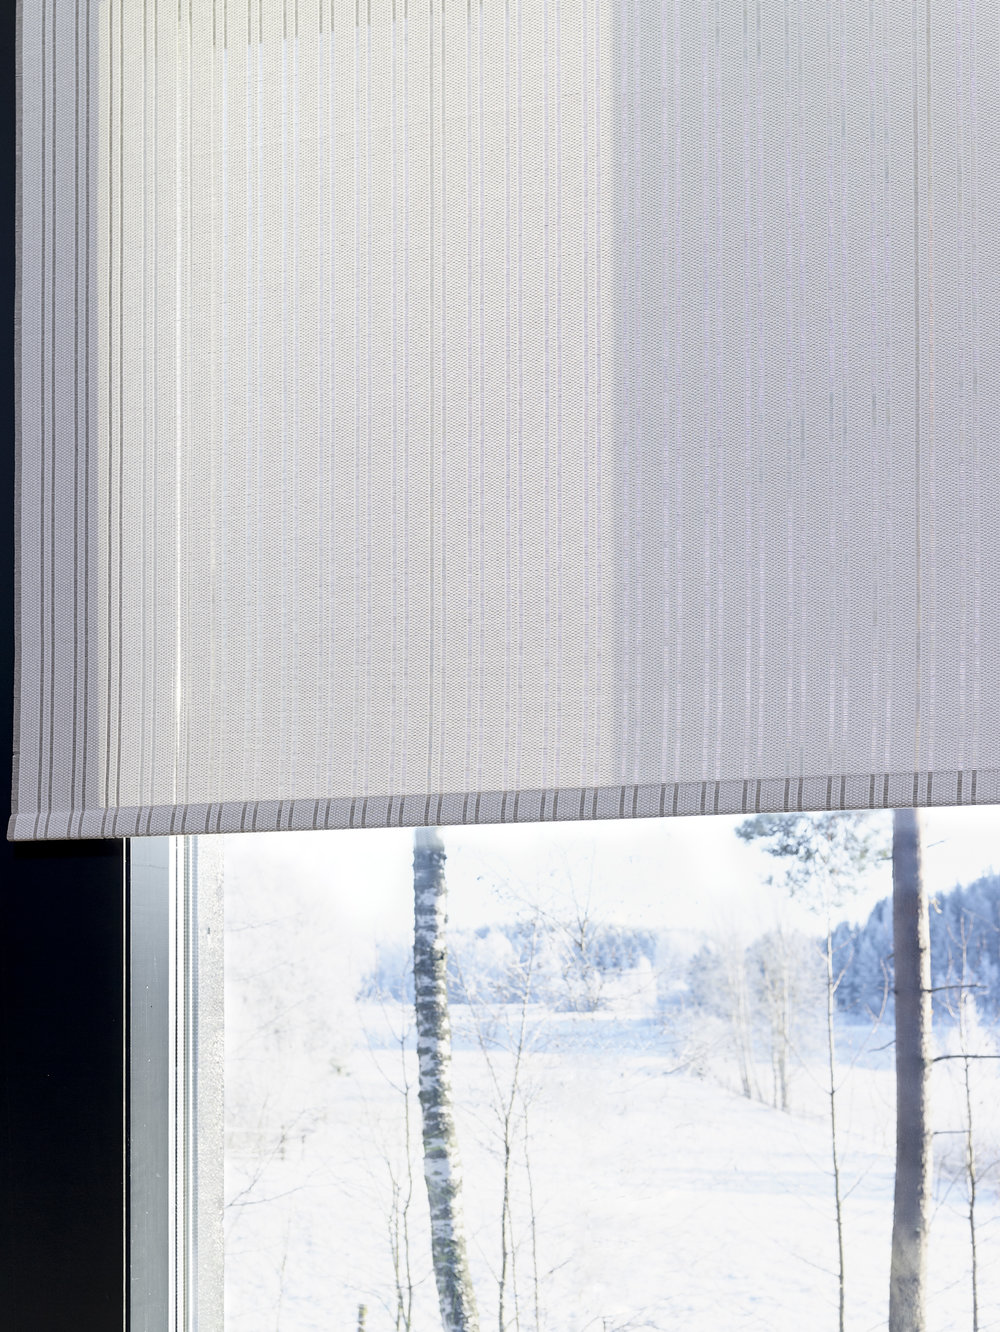 Cloud 2140115 white-stone two-colorde fabric, chain operated roller blind